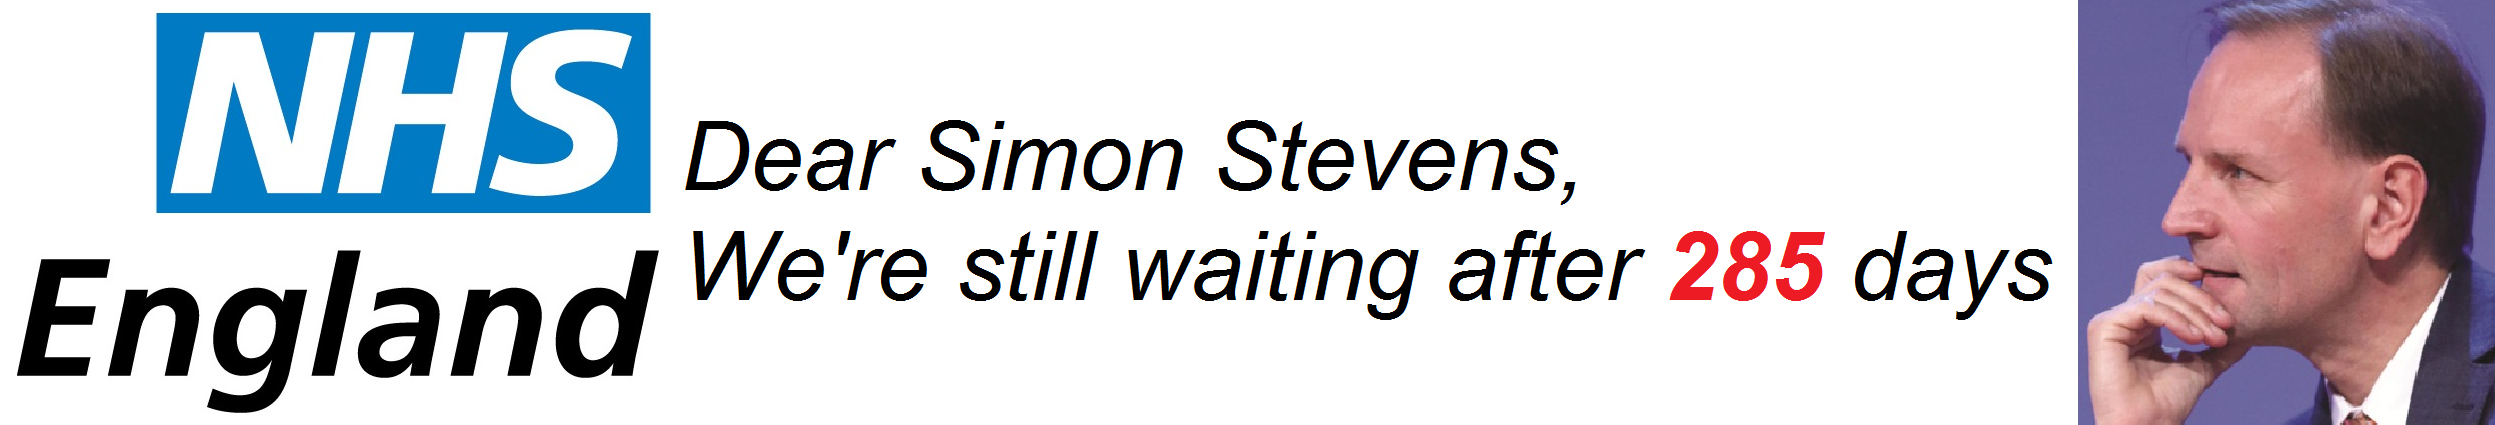 NHS England Simon Steven still waiting after 285 days